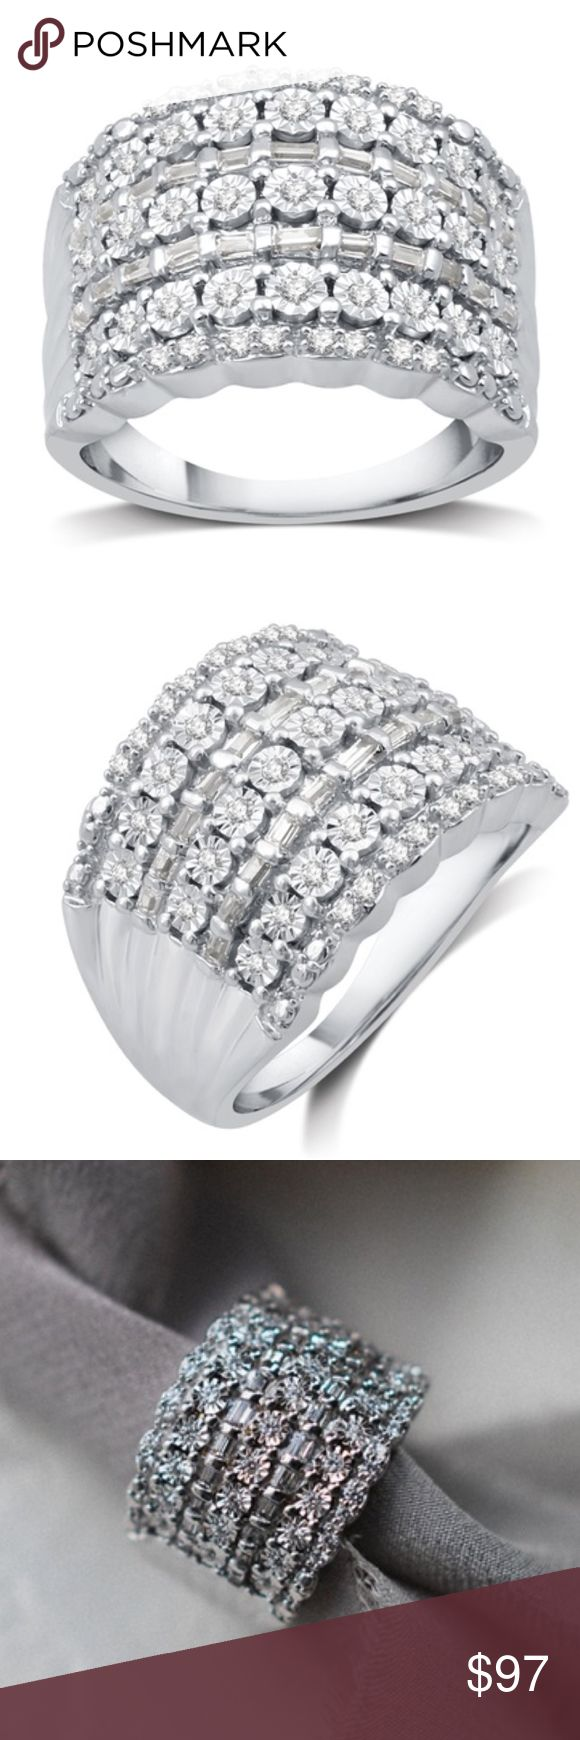 NEW Round Baguette Diamond Ring Sterling Sz 9 1/2 CTTW Round and Baguette Diamond Ring in Sterling Silver by DeCarat Cut: very good Color: I–J Clarity: I2–I3 Total carat weight: 0.52 Type: diamond Treatment: genuine Total number of stones: 65 Stone shape: round and baguette Stone enhanced: no Metal: sterling silver Is metal solid?: yes Plating: rhodium Finish: high-polish Setting type: nick, prong, and channel Nickel-free: yes Hypoallergenic: yes Weight: 6.16g Band width: 2mm Full…